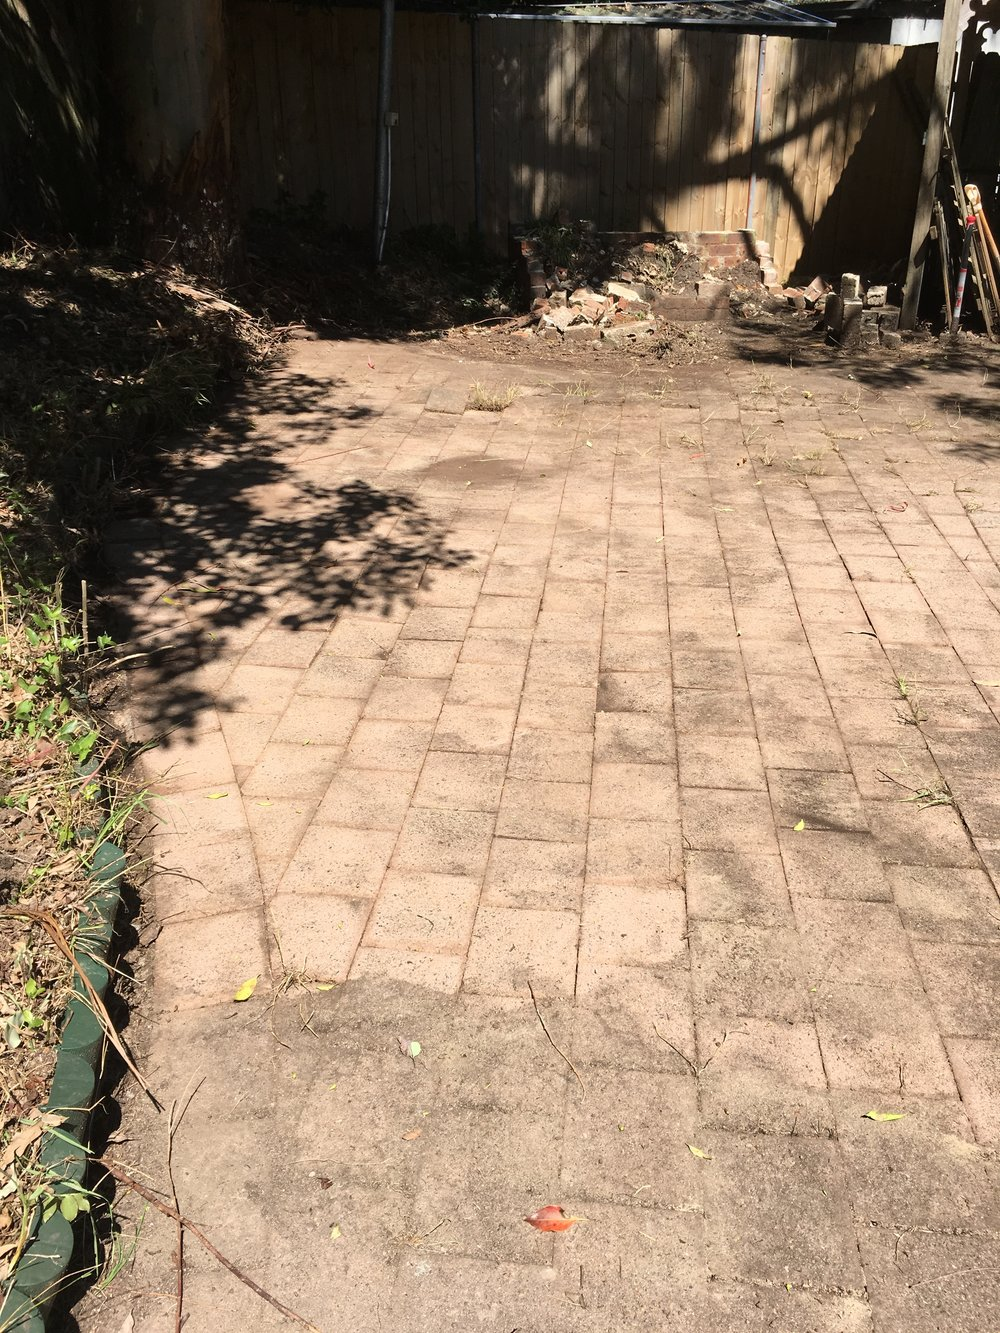 The water-blasted pavers